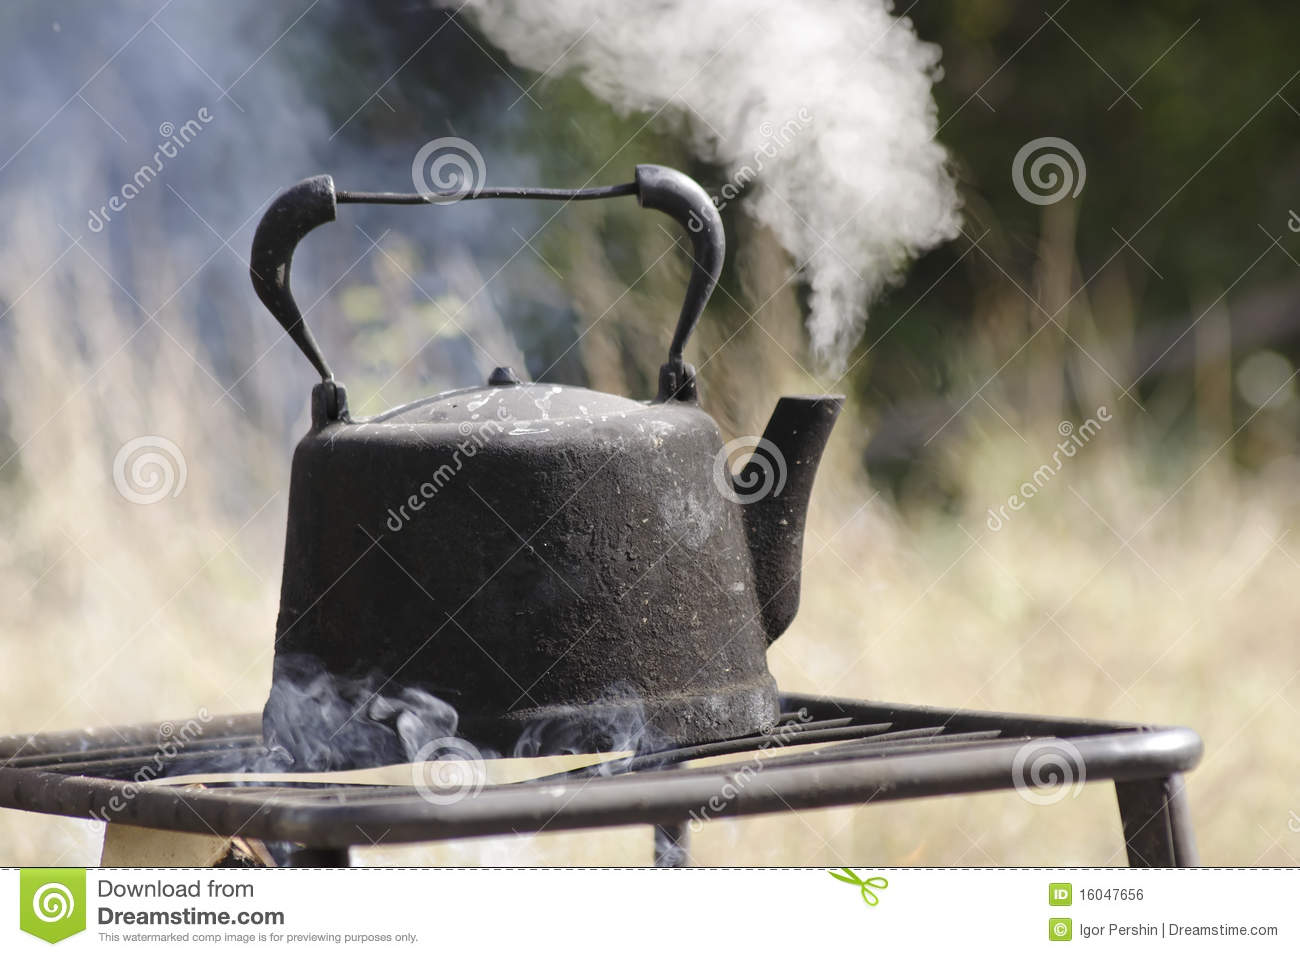 Old Kettle Boiling Outdoors Royalty Free Stock Image - Image: 16047656